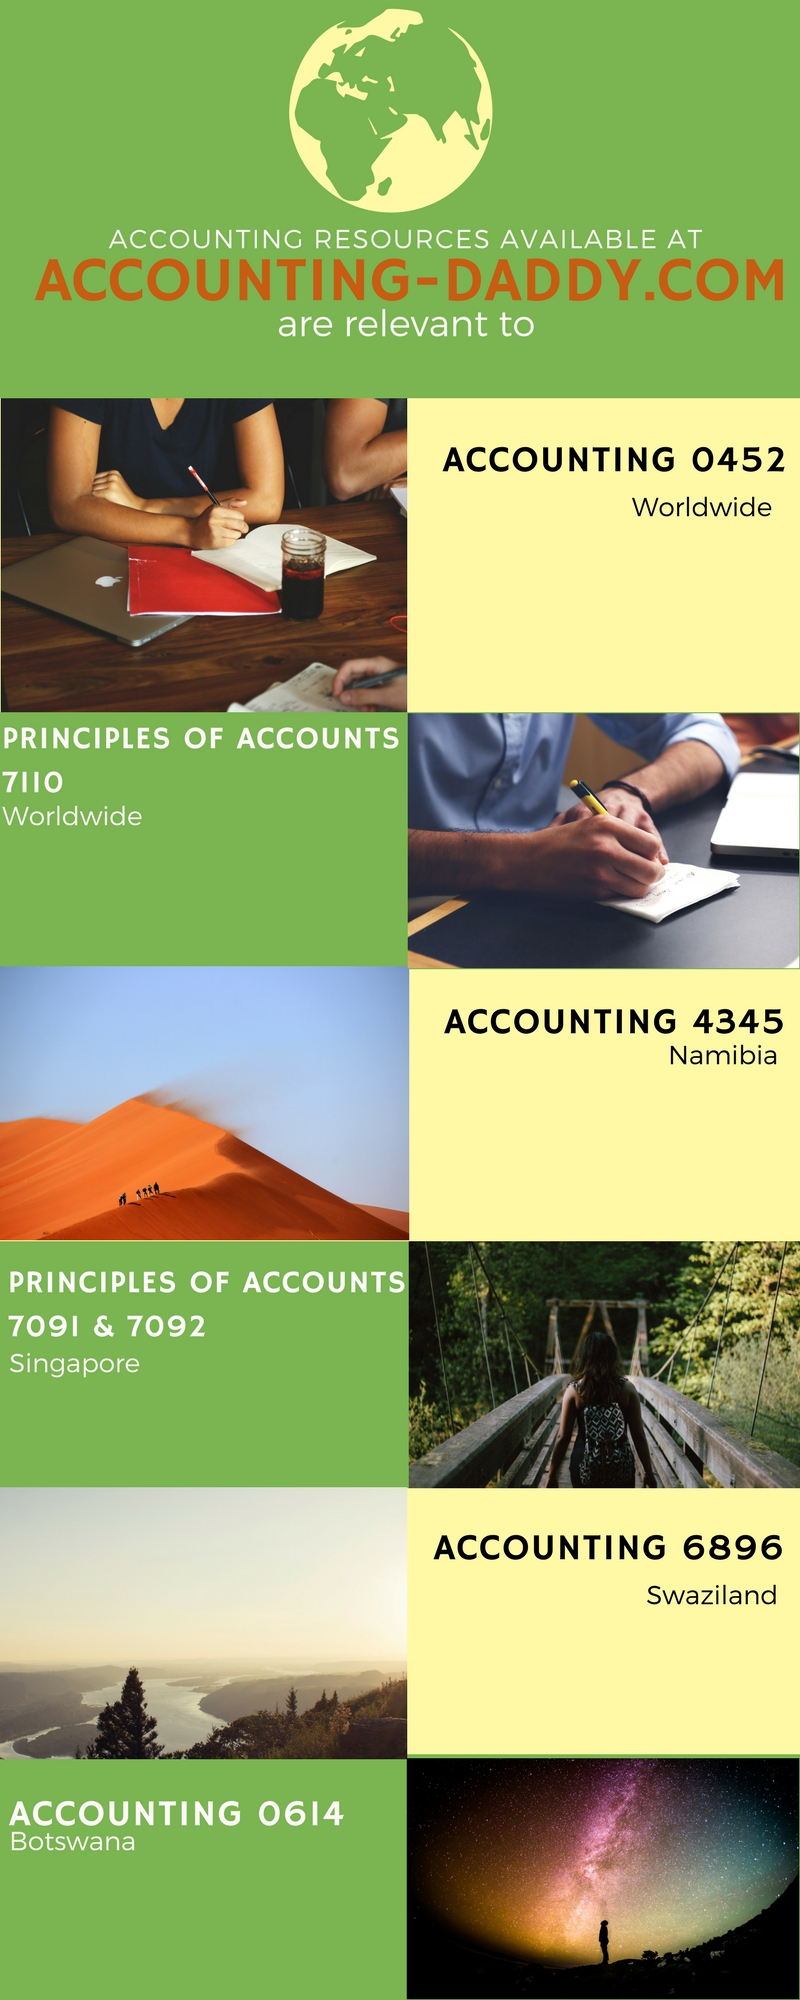 The relevance of Accounting-Daddy.com O Level Accounting resources for various examination bodies worldwide.